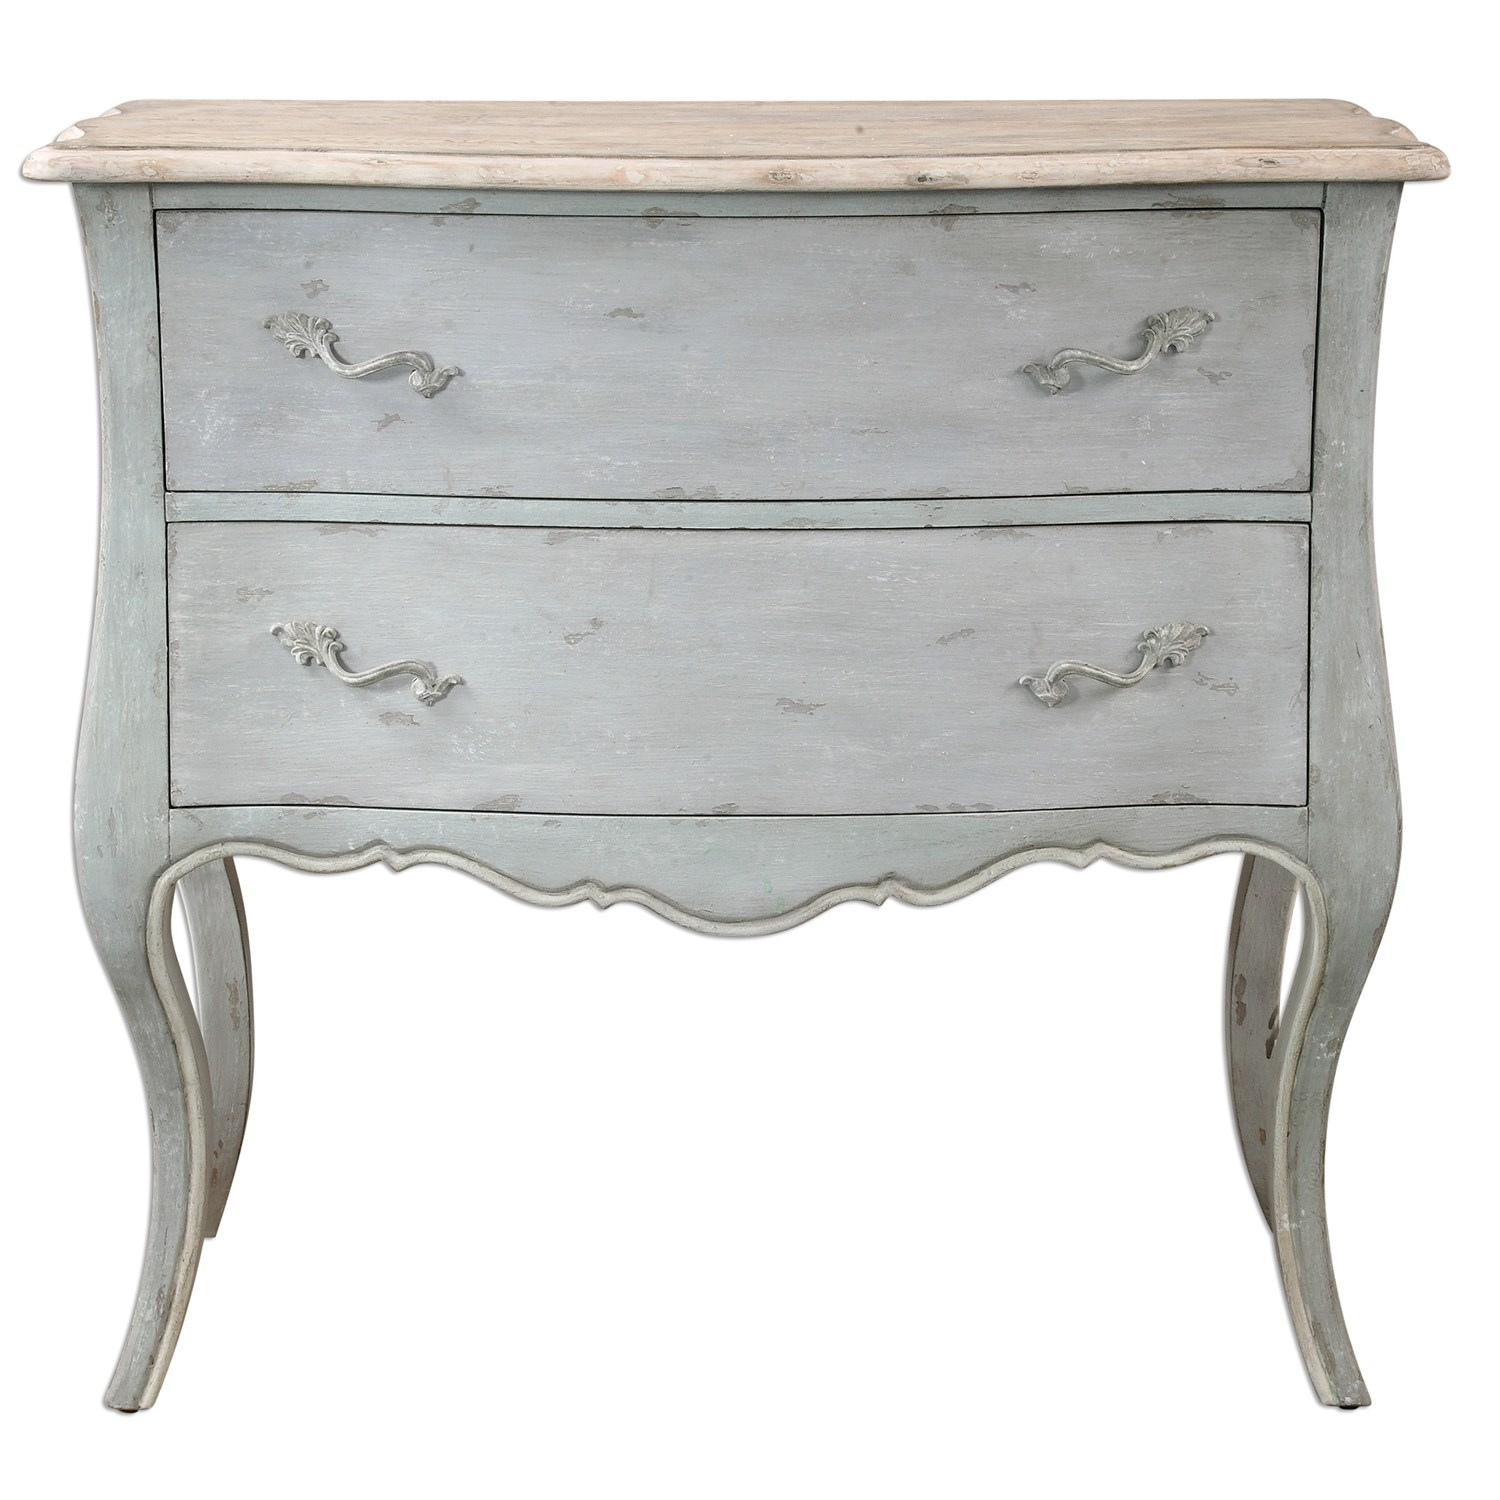 inspirations interior small storage design ideas with accent chest entry chests wood cabinet drawers hall mirrored foyer painted furniture door console tables teal blue table